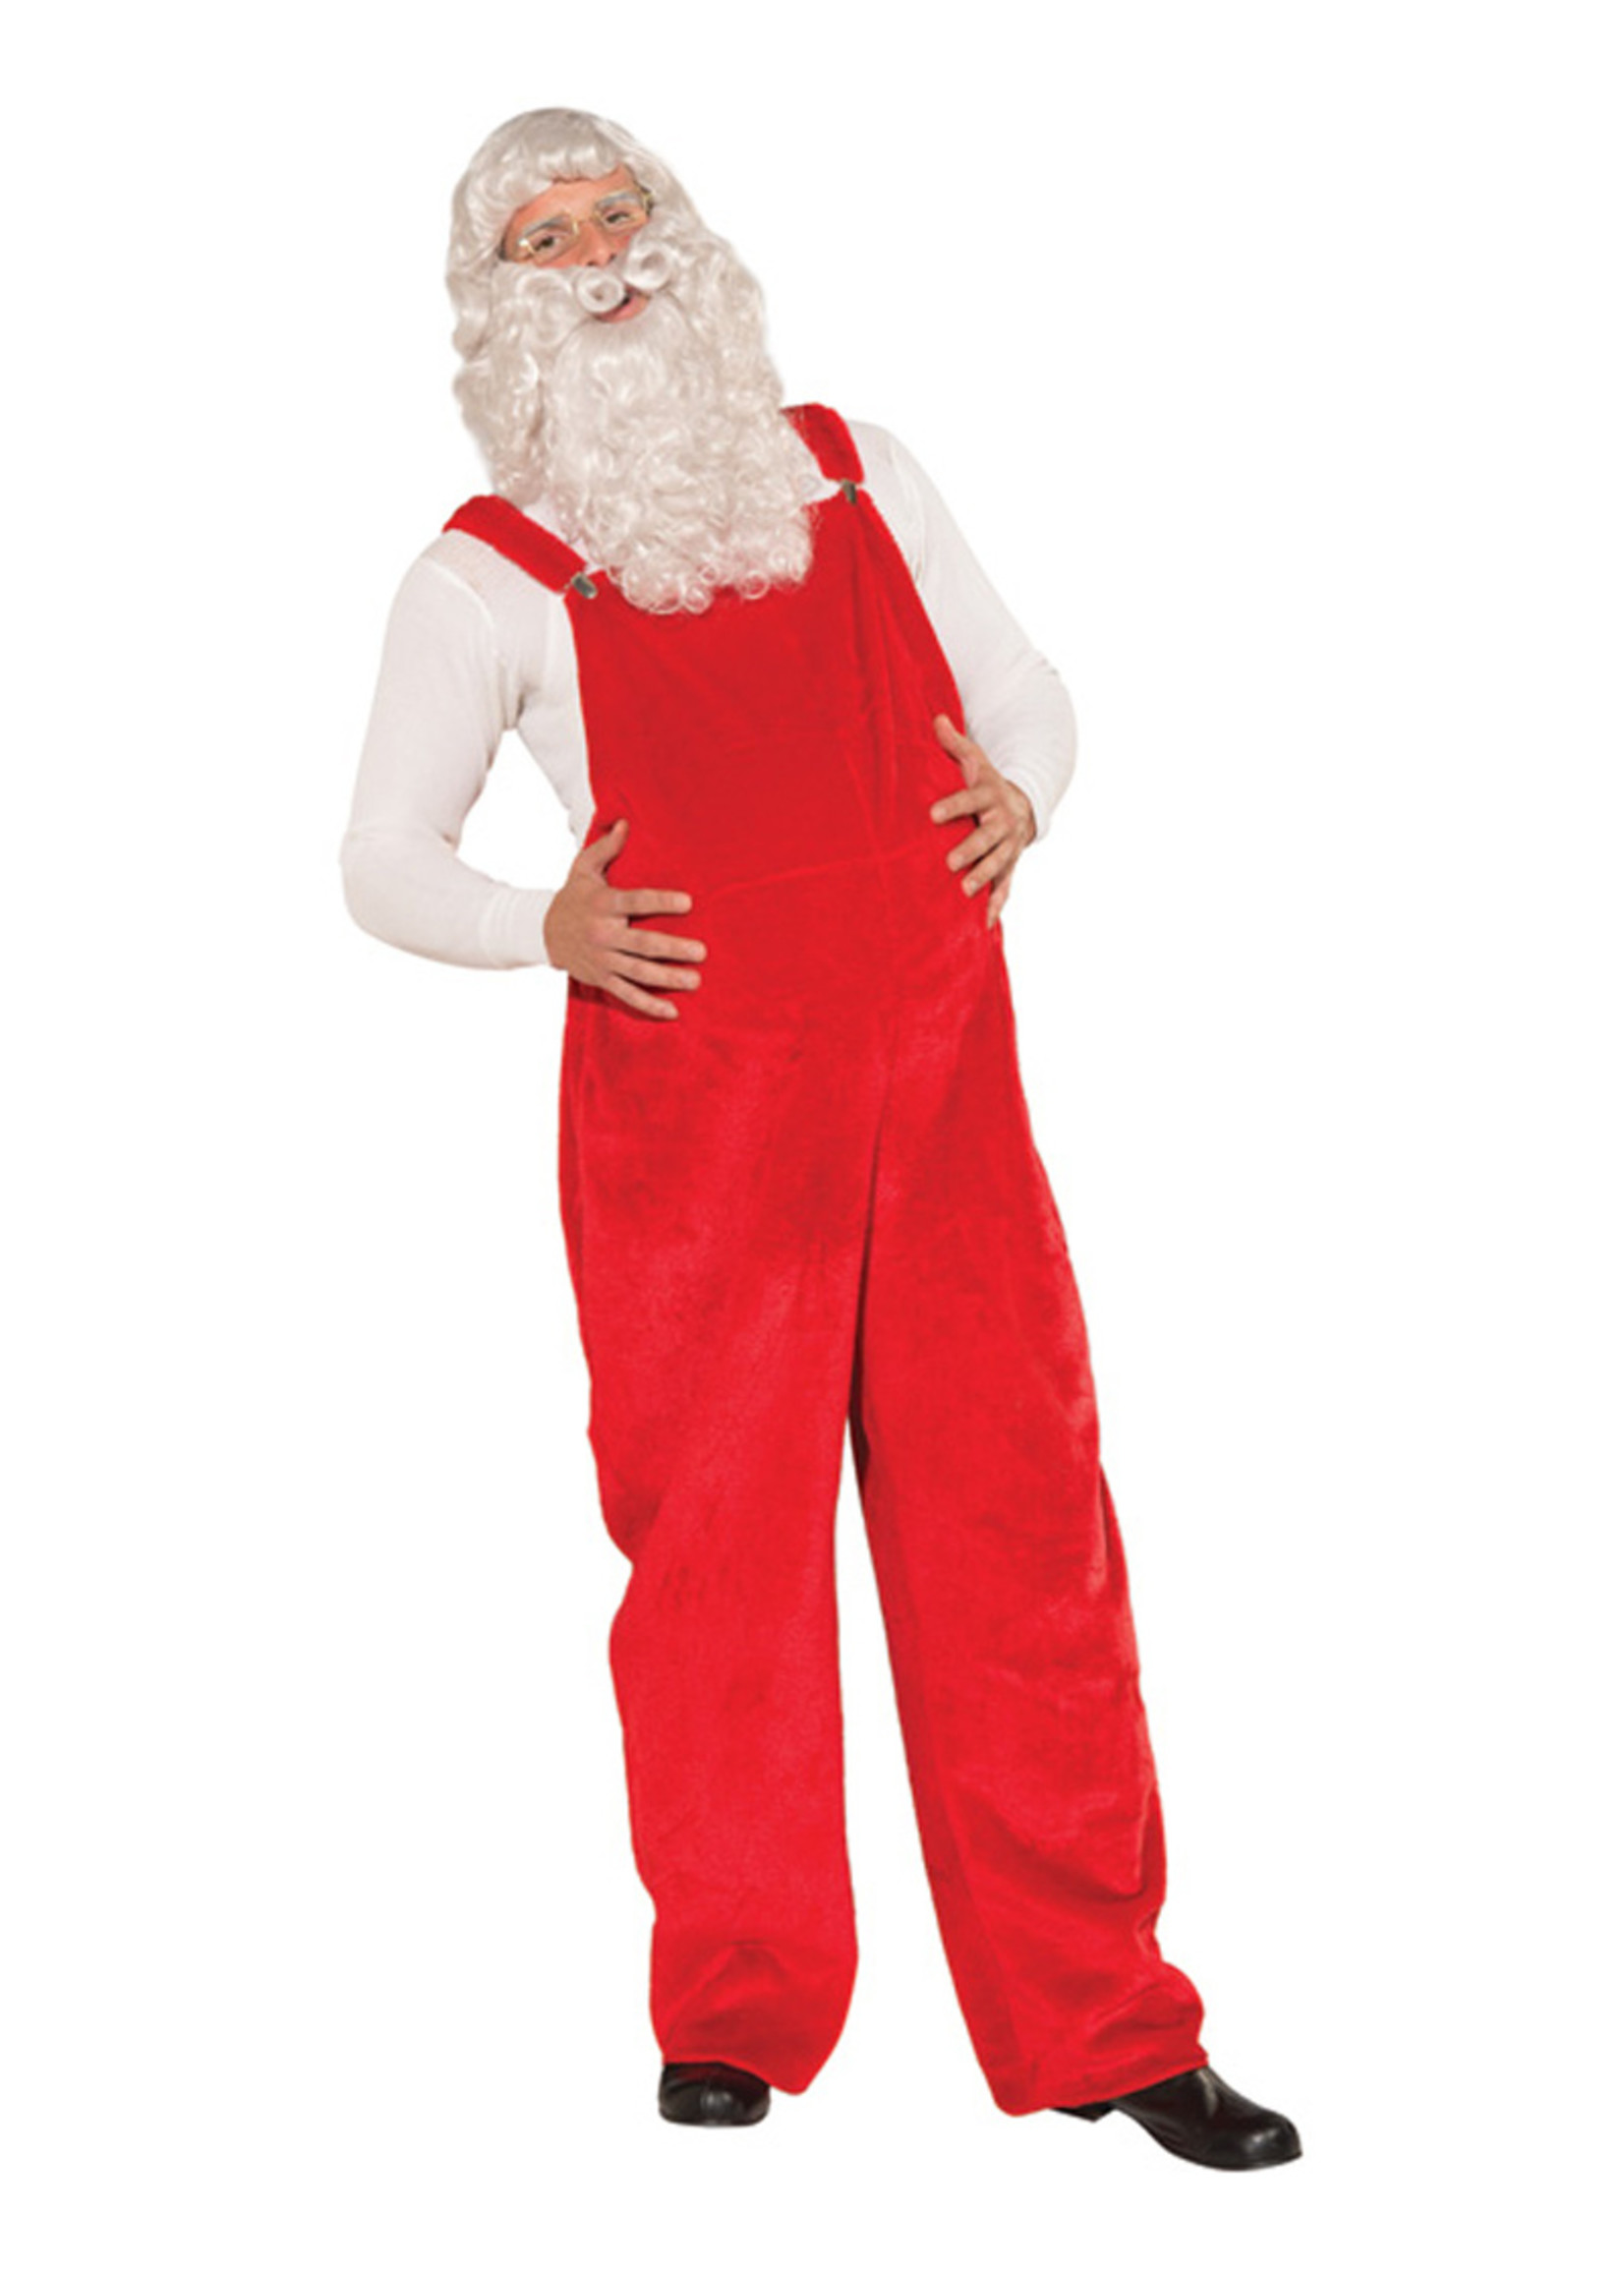 FORUM NOVELTIES Santa Overalls Costume - Men's